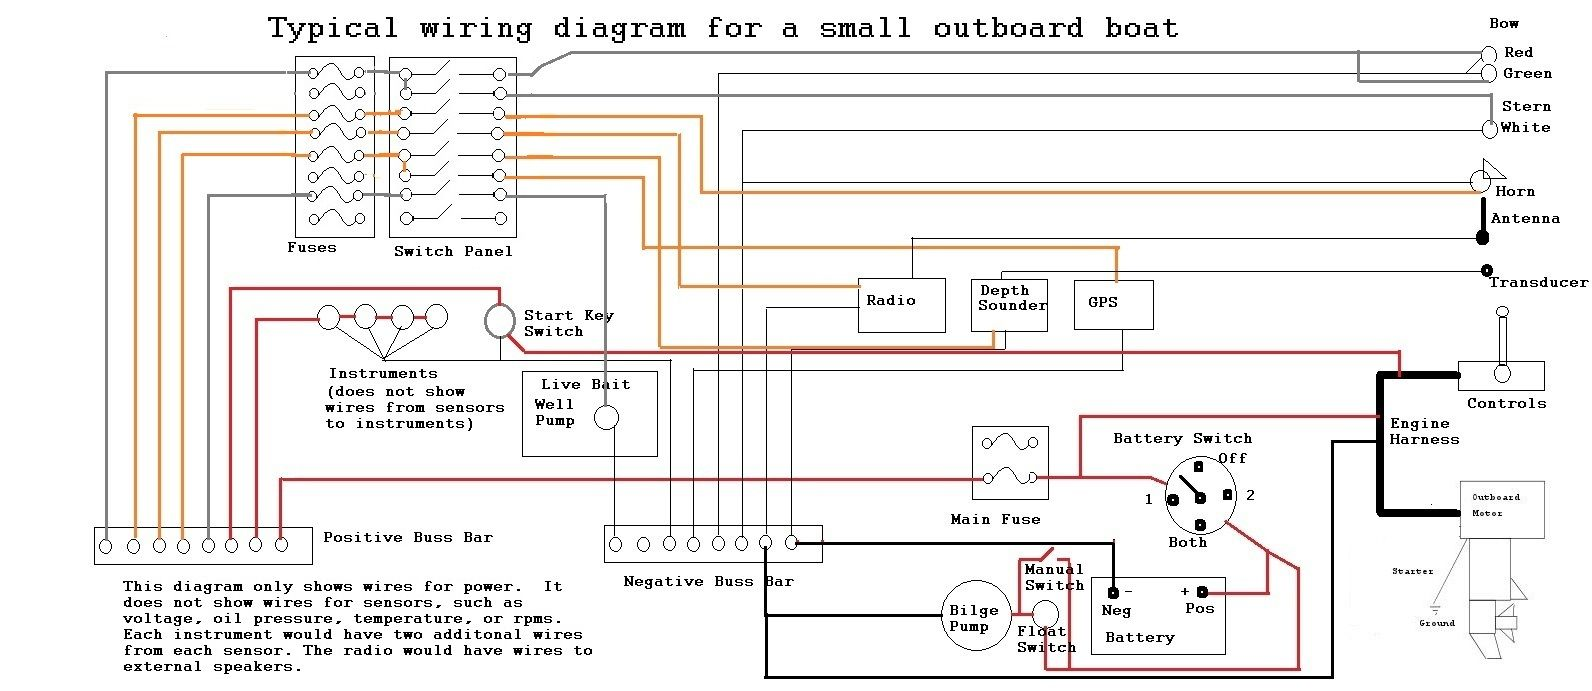 medium resolution of wiring diagram small outboard